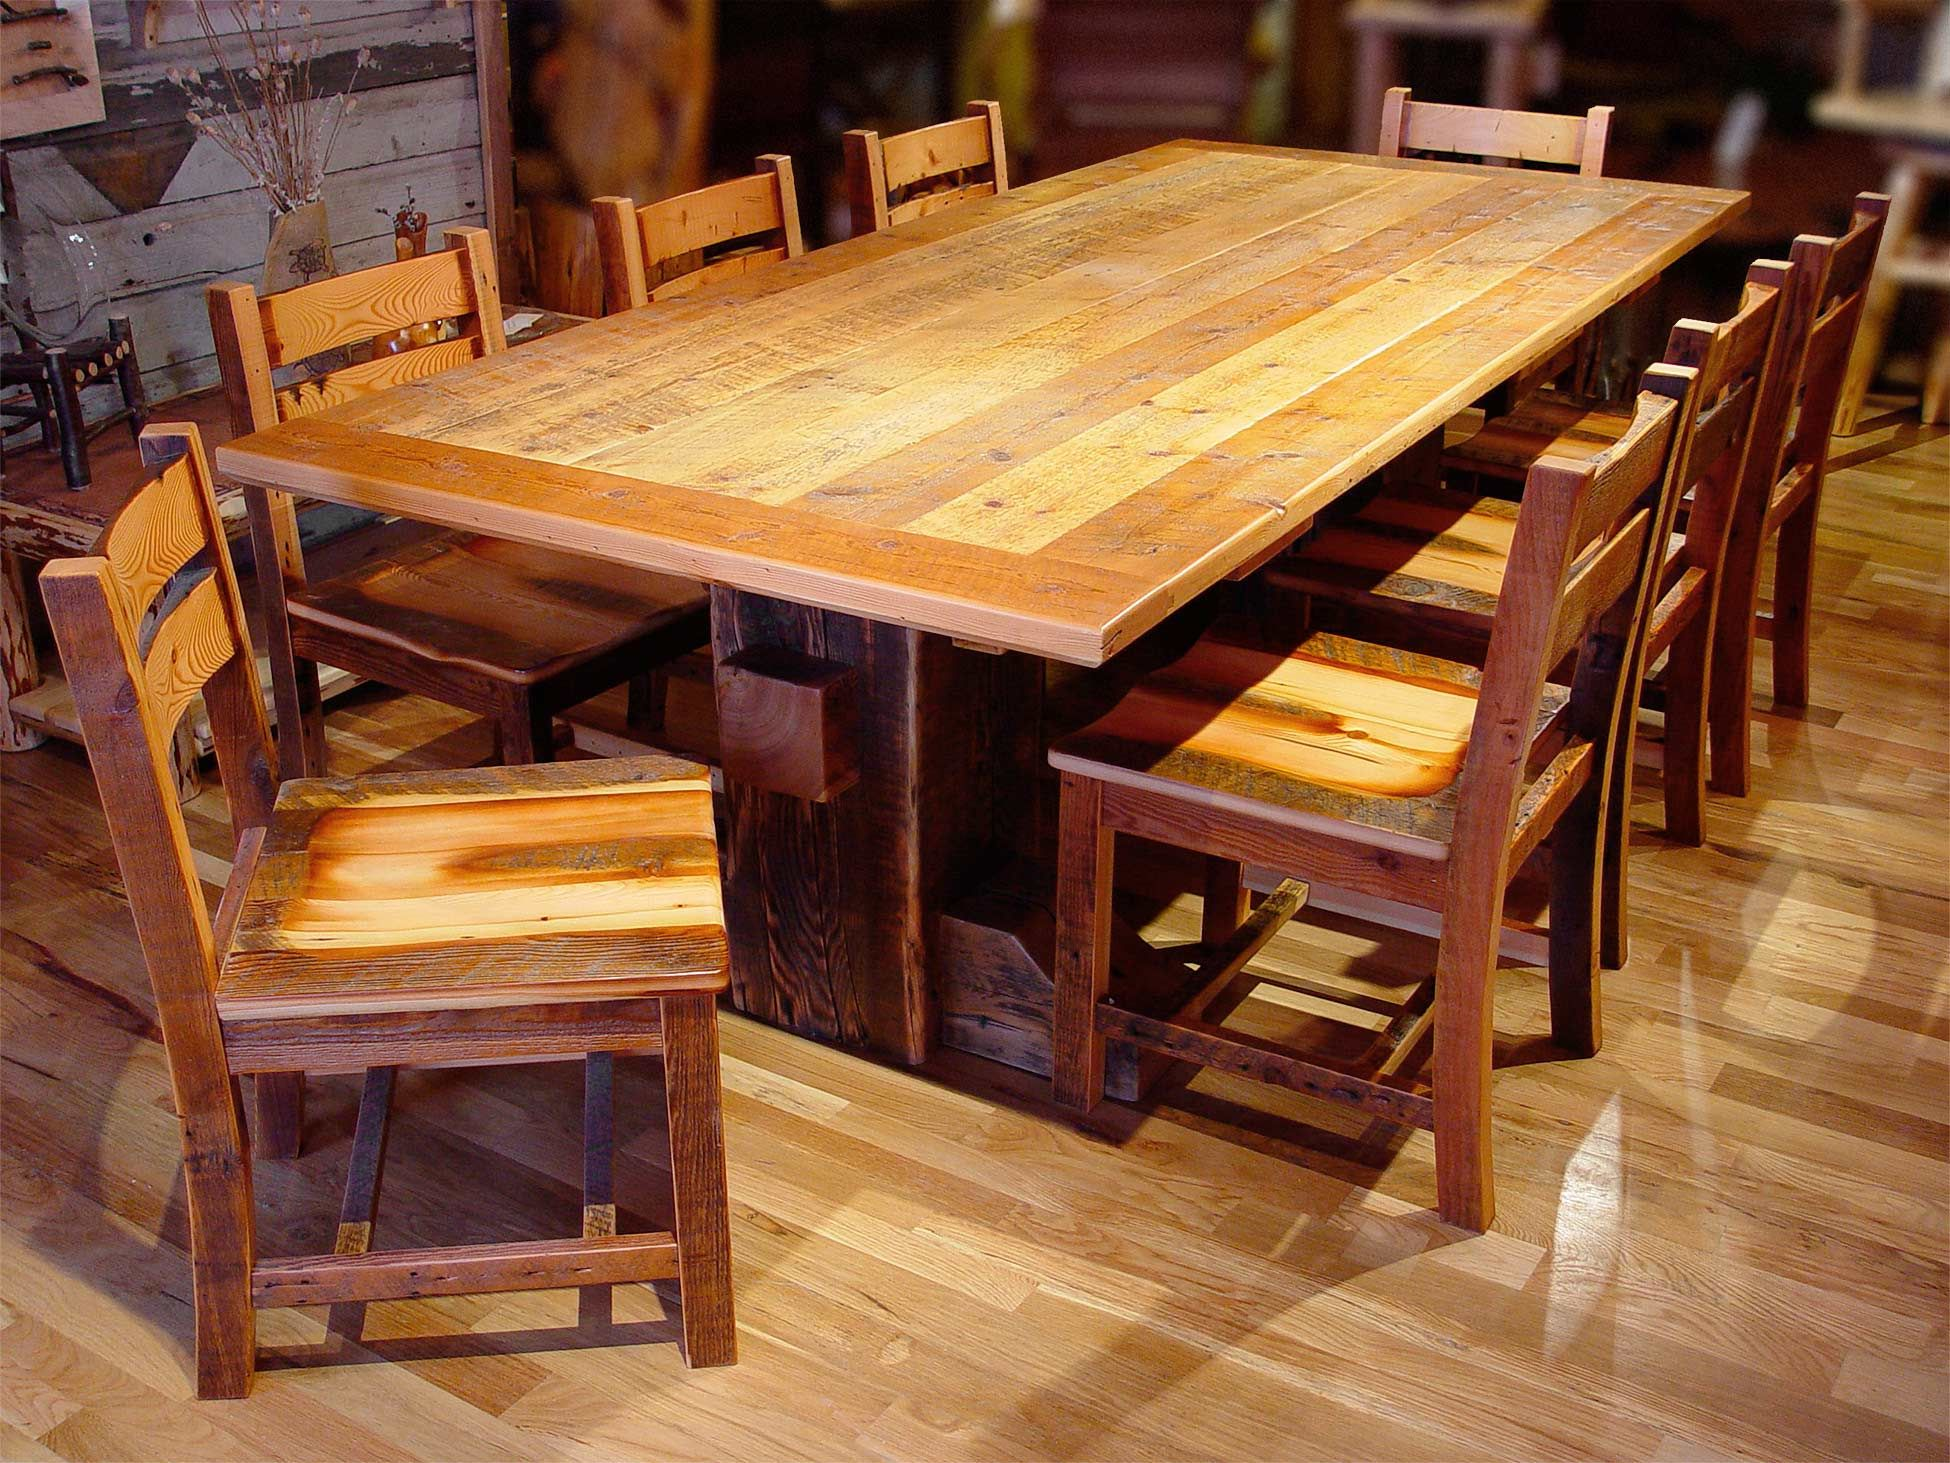 Large furniture ranging from 10 foot dining tables to saloon side chairs.